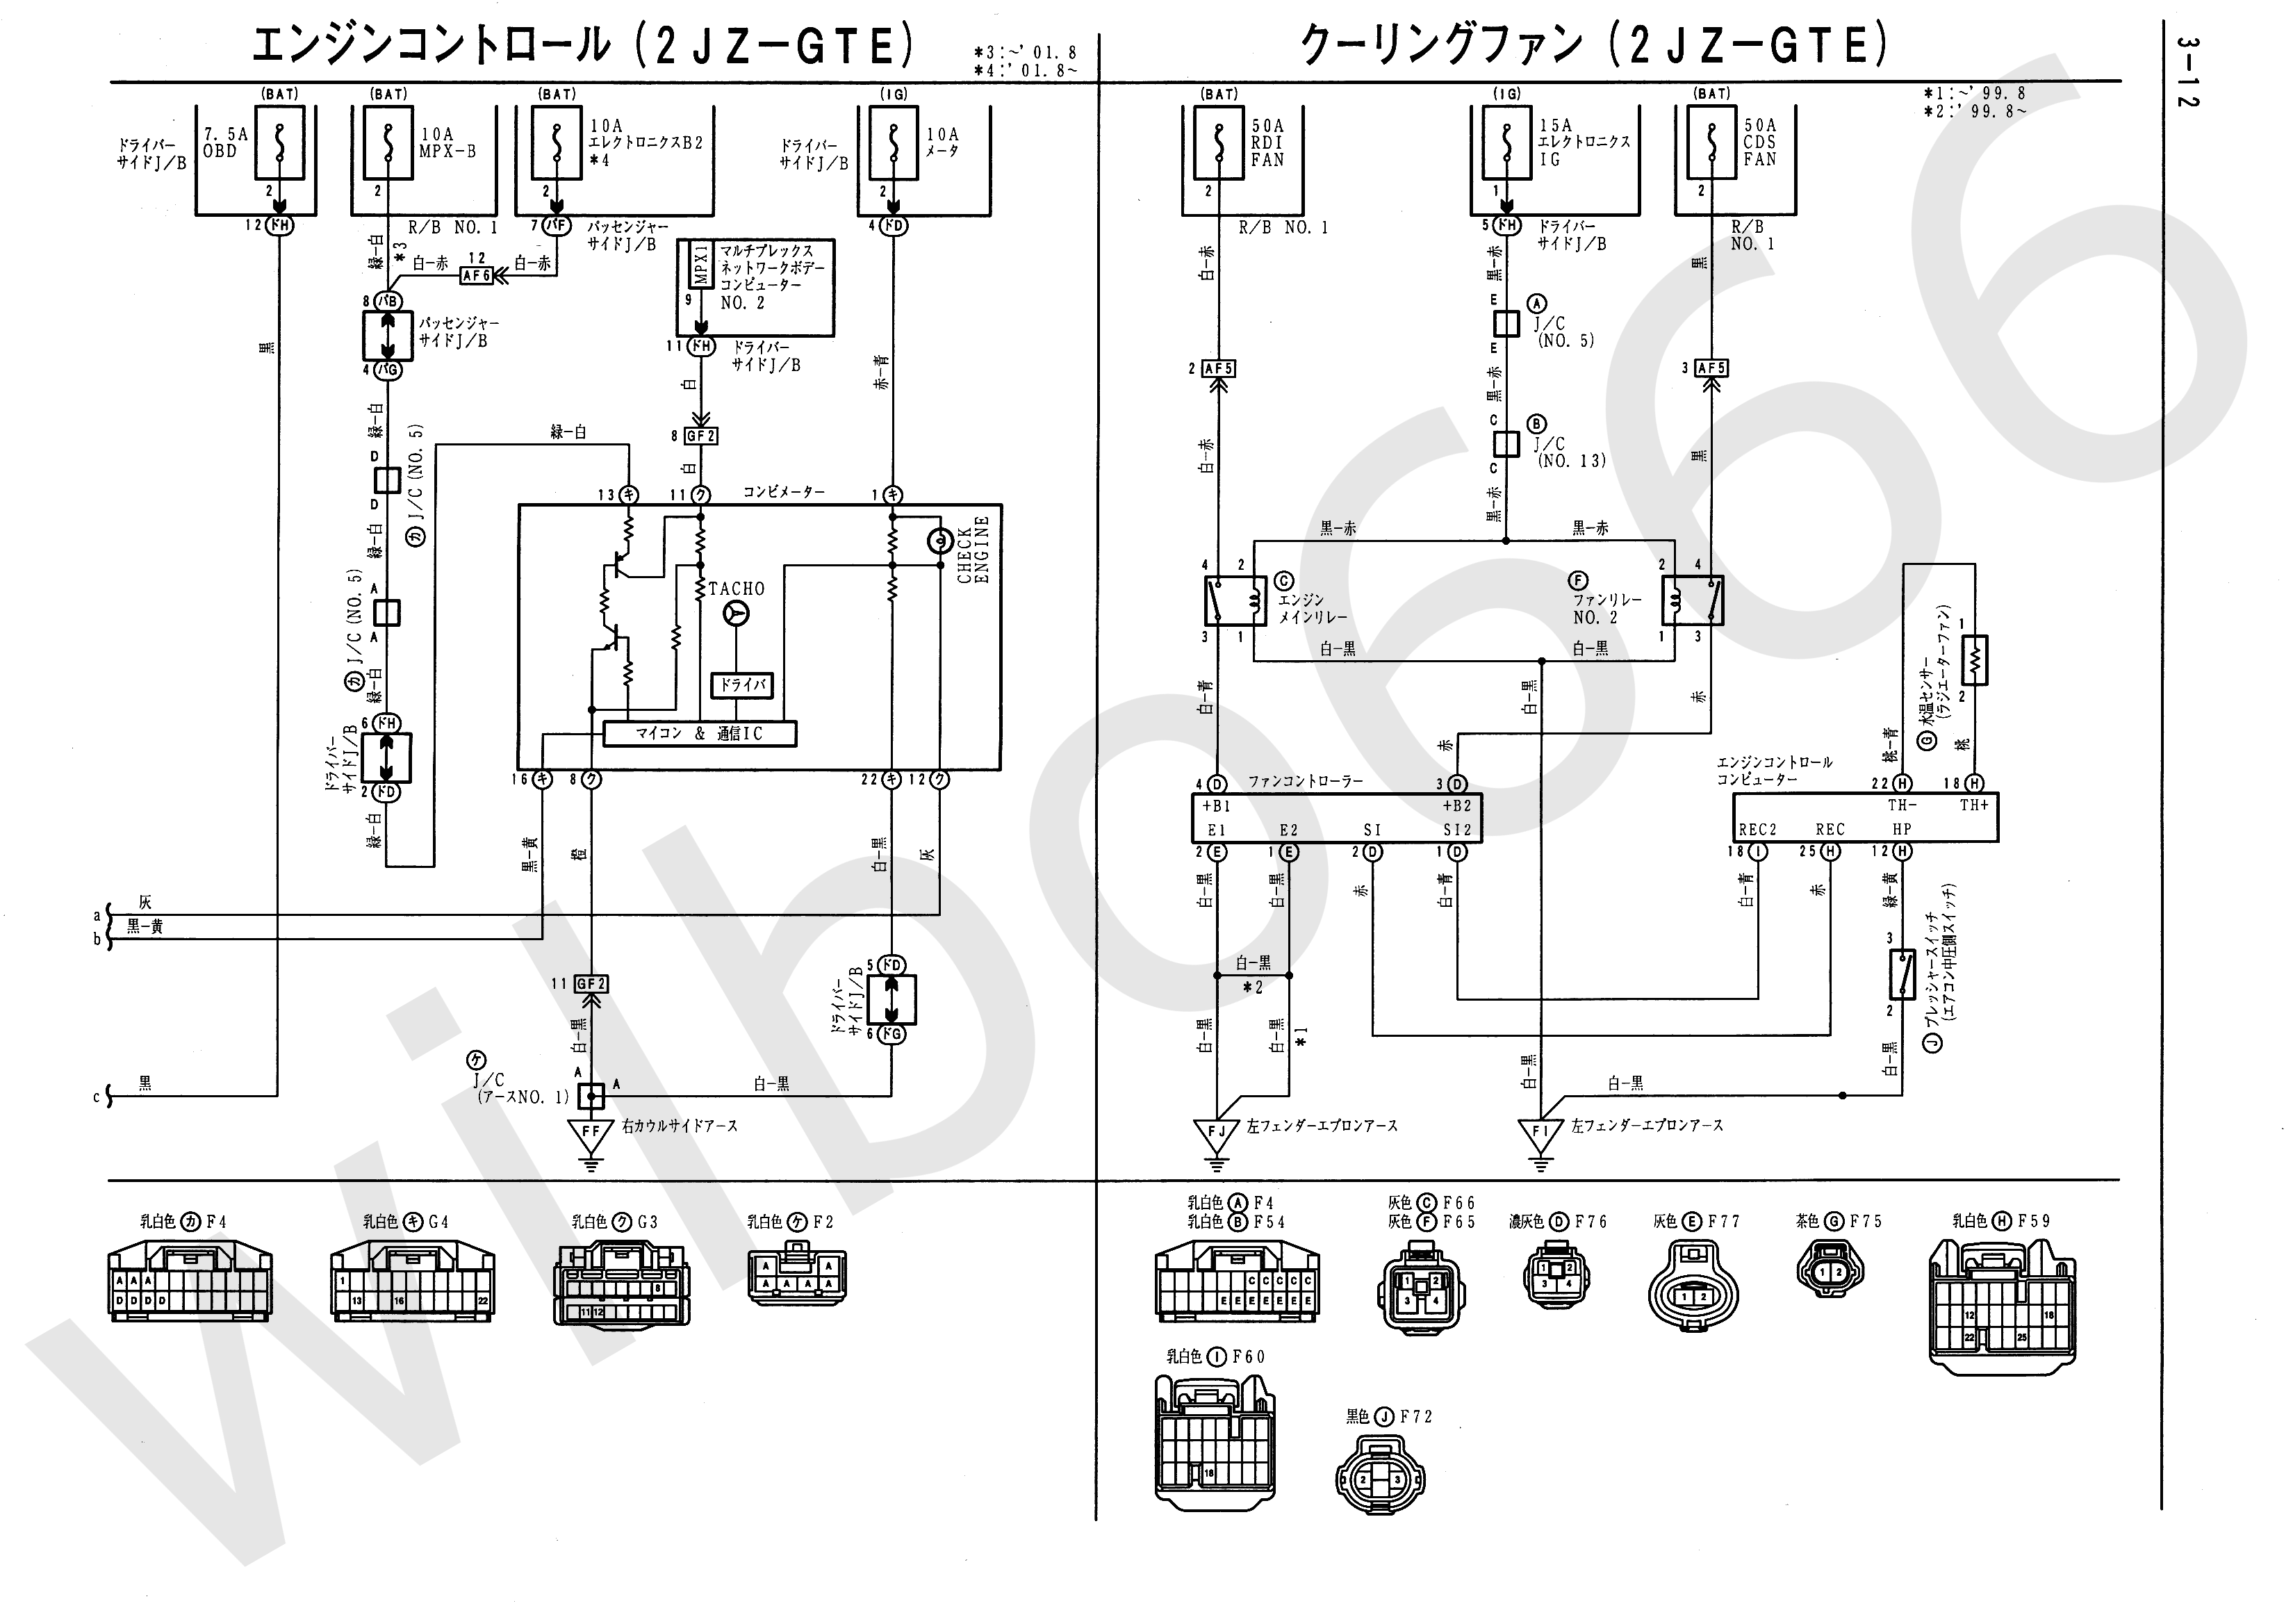 JZS161 Electrical Wiring Diagram 6748505 3 12 wilbo666 2jz gte vvti jzs161 aristo engine wiring 2jz wiring diagram at cita.asia